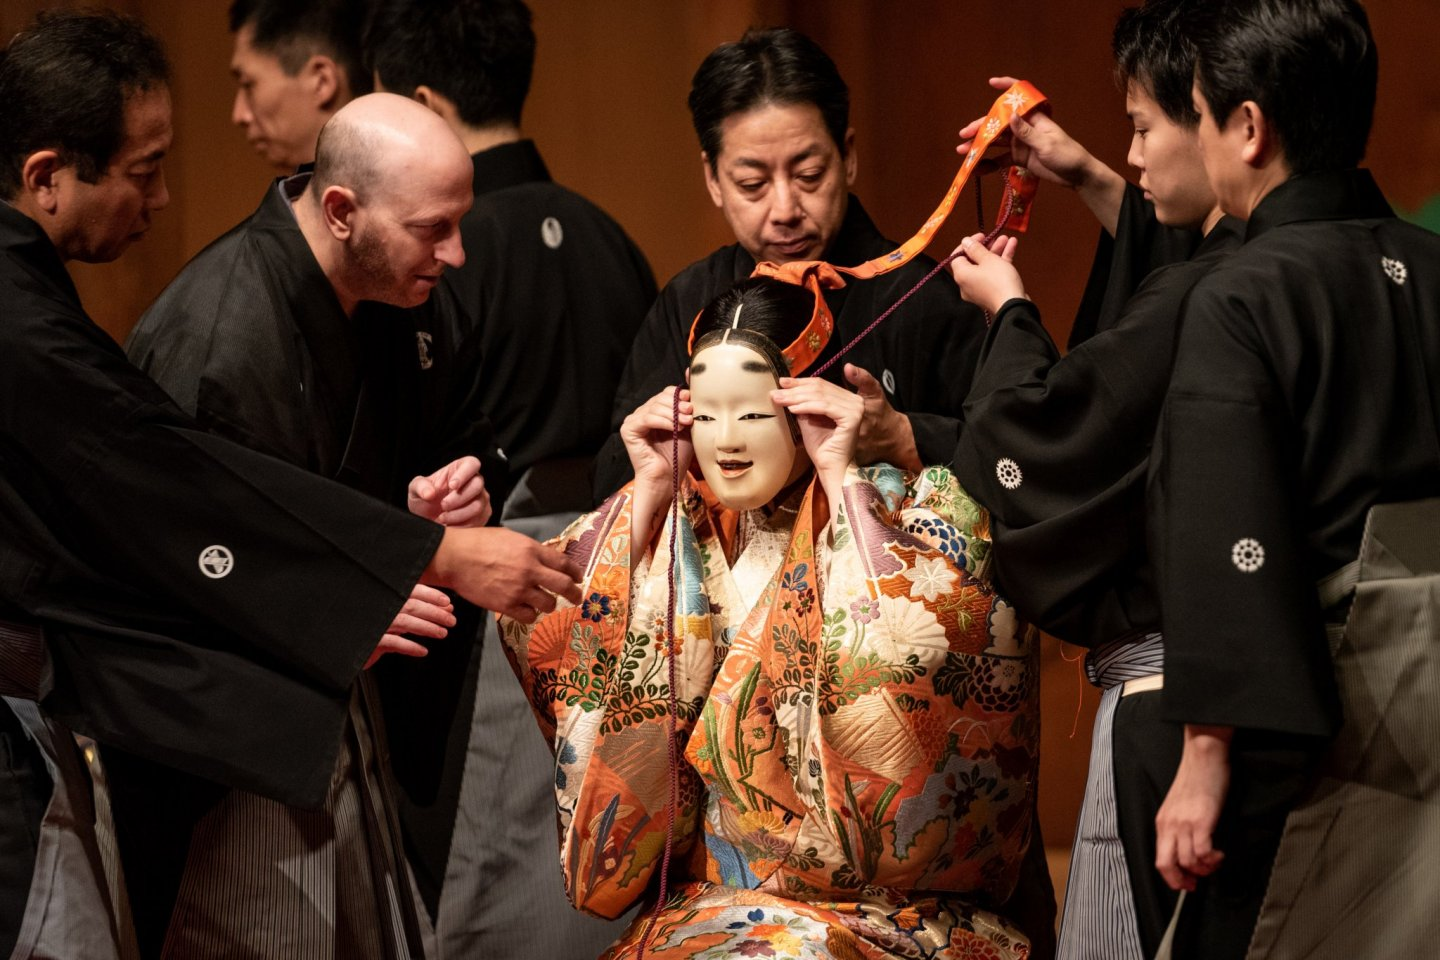 Masks play an important role in Noh